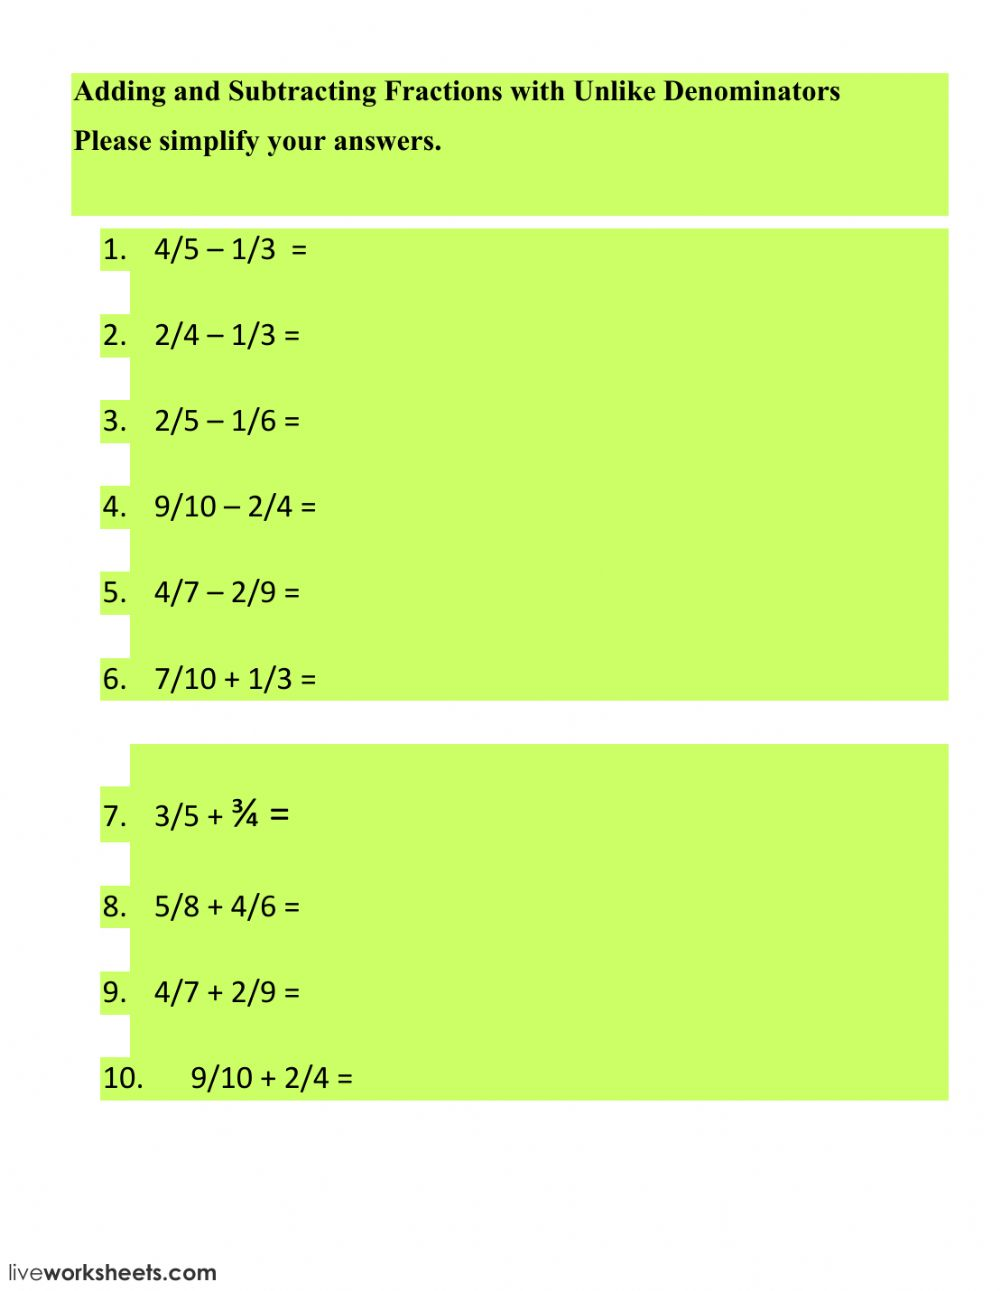 medium resolution of Adding-Subtracting Fractions with Unlike Denominators worksheet